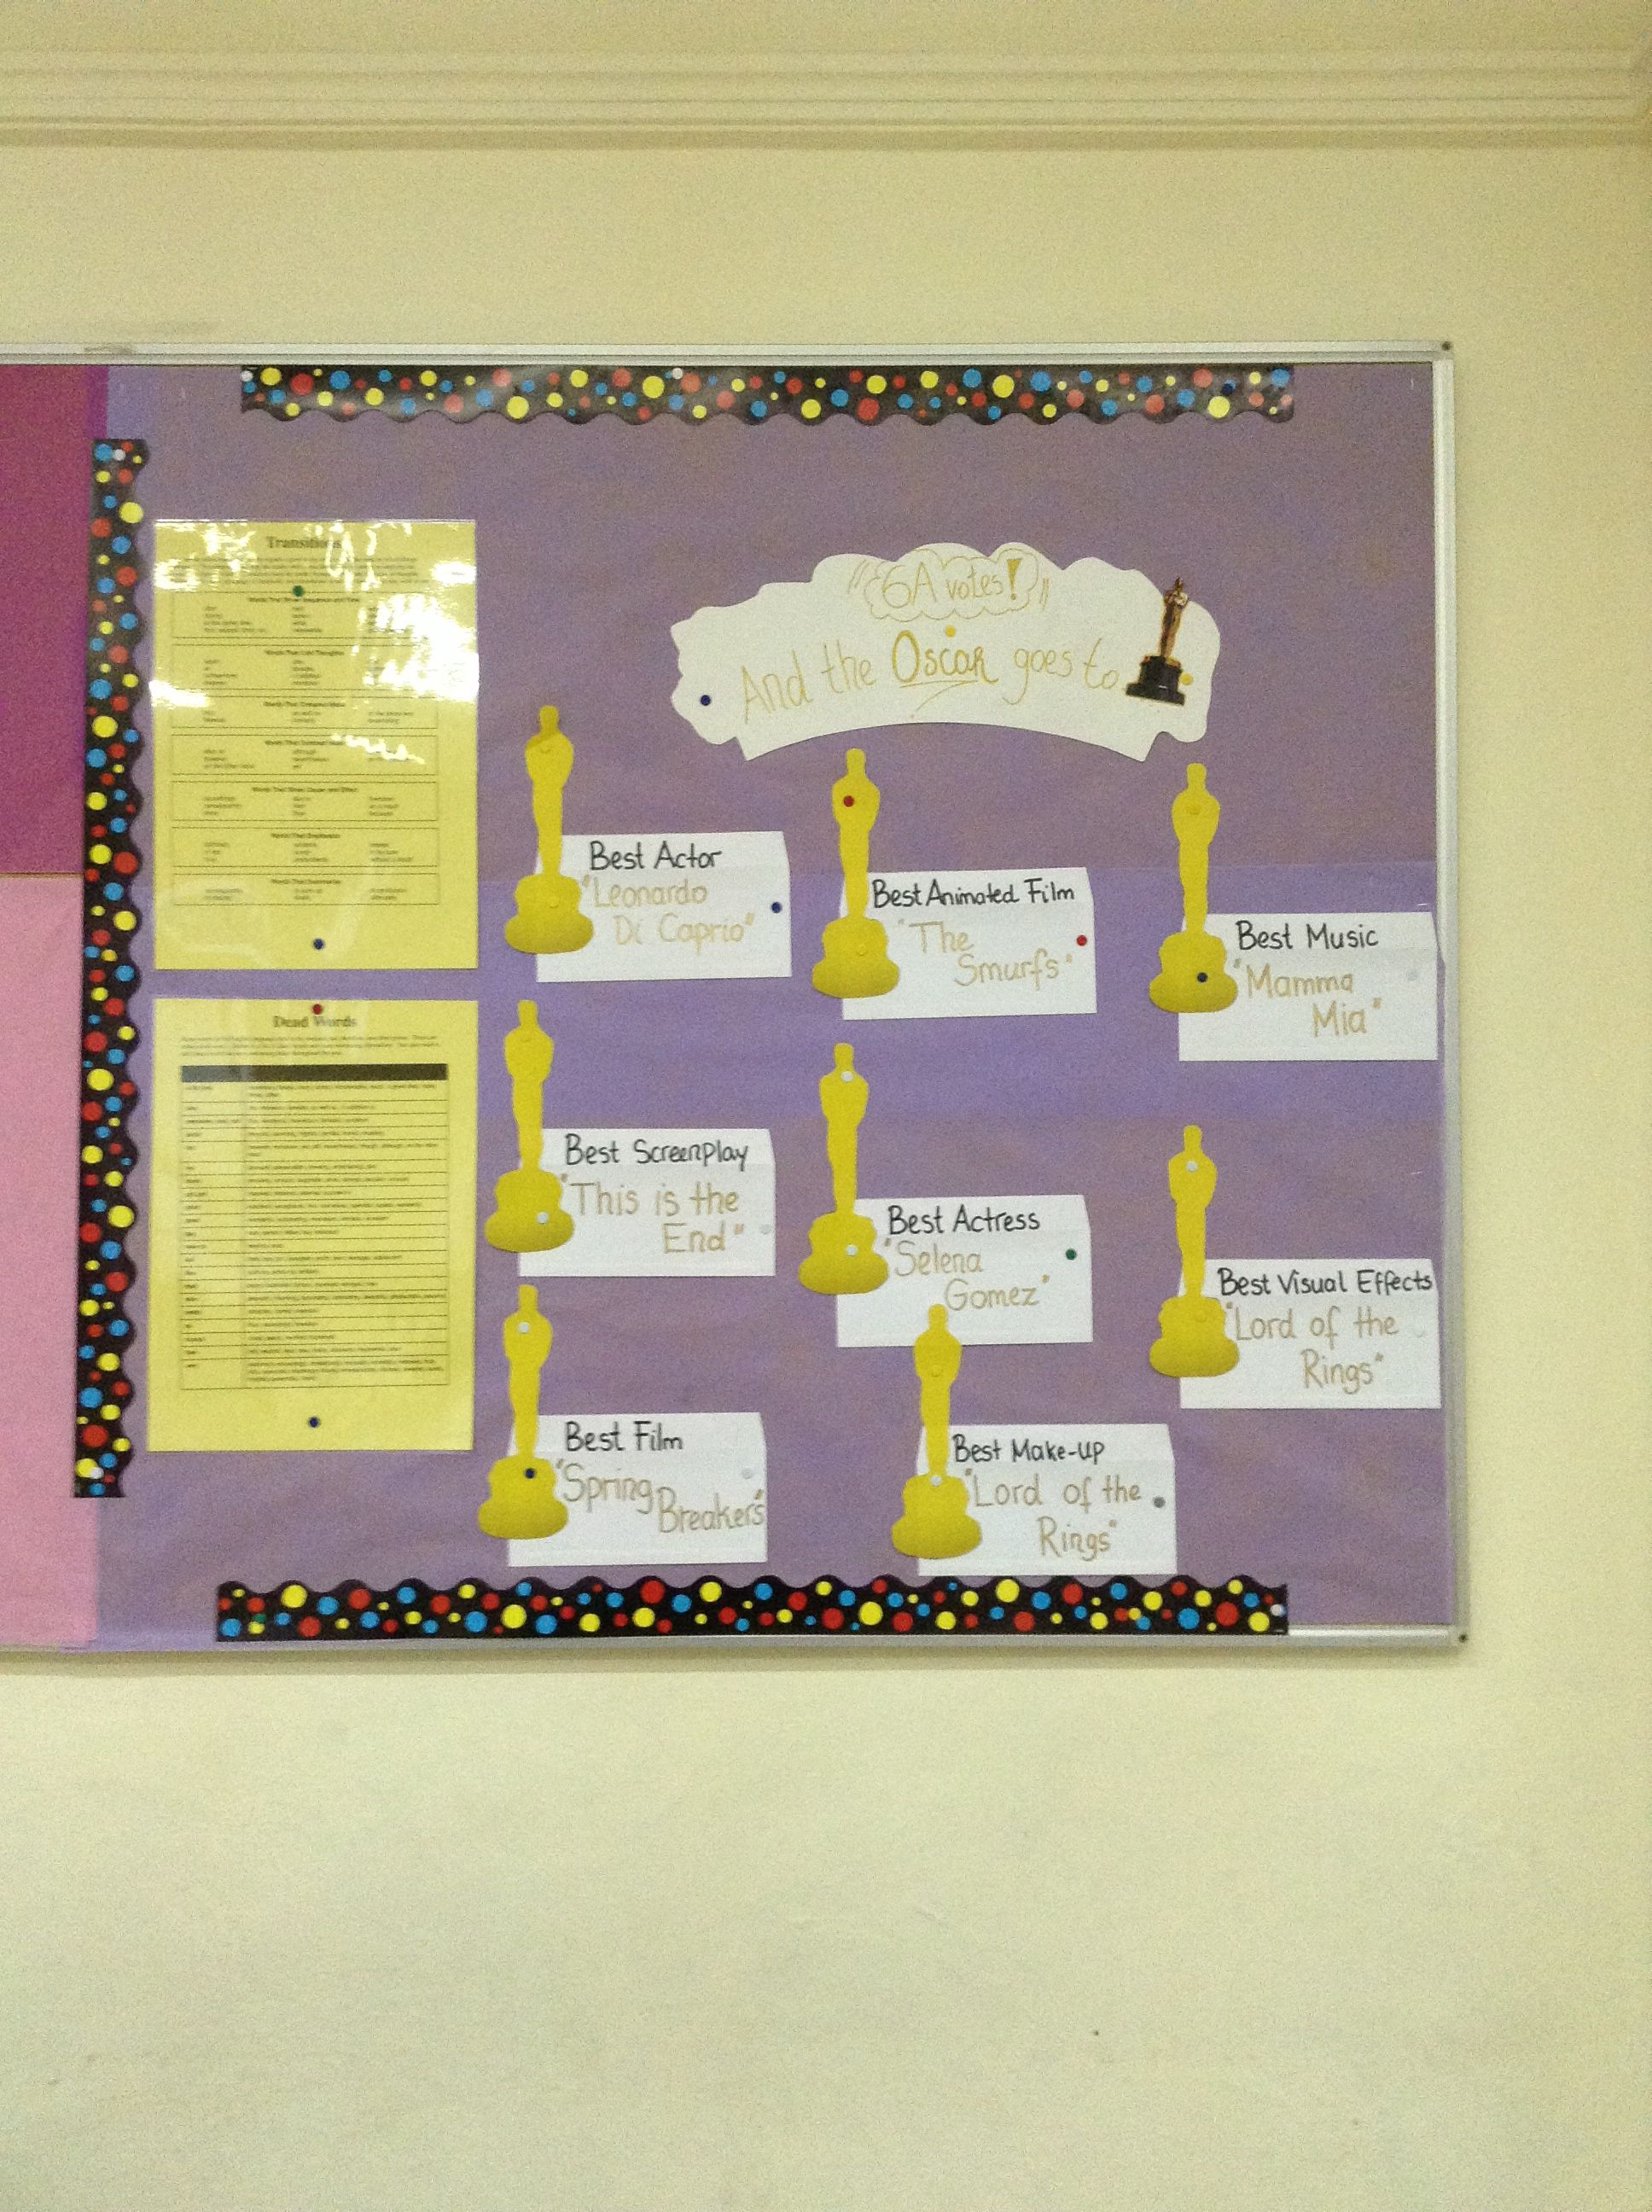 Bulletin Board idea related to the film industry and Oscars.